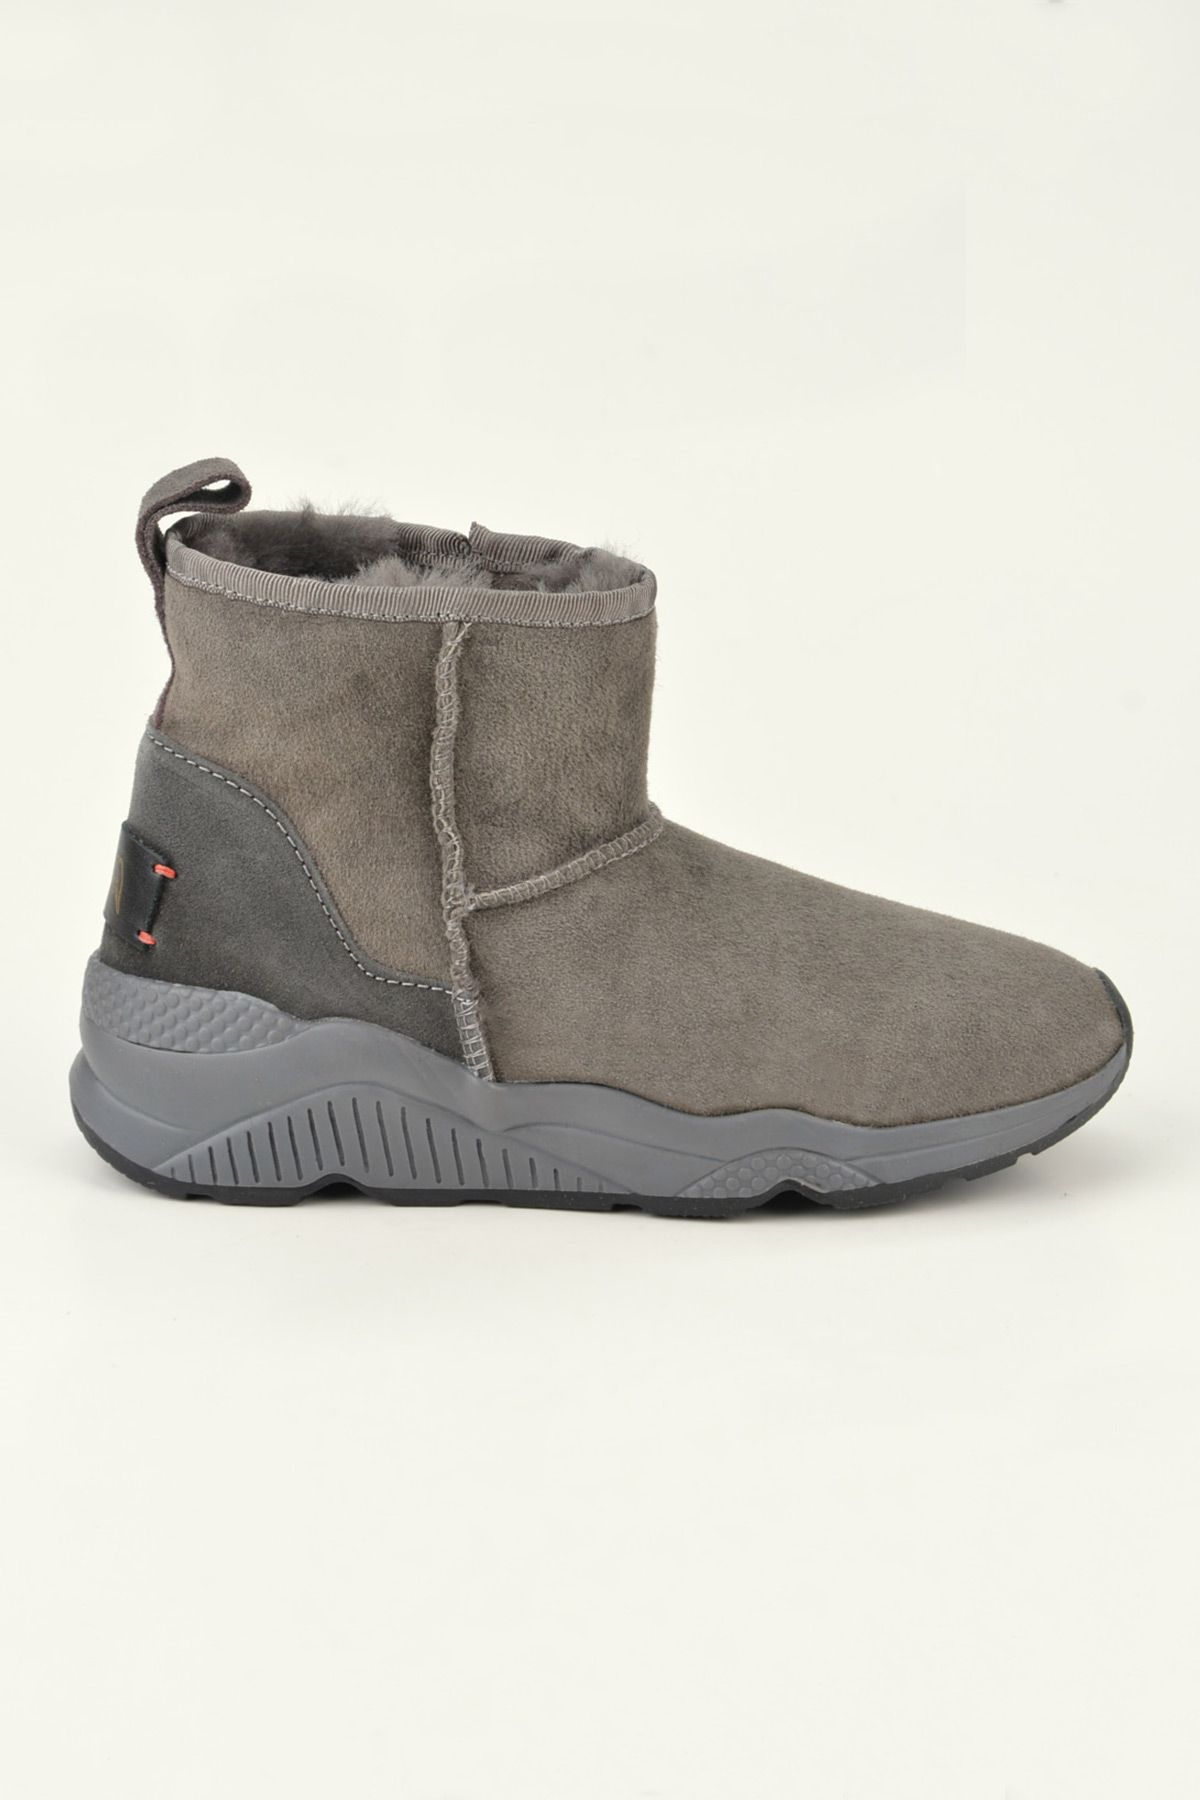 Pegia Women Boots From Genuine Fur With Side Zip 157401 Gray